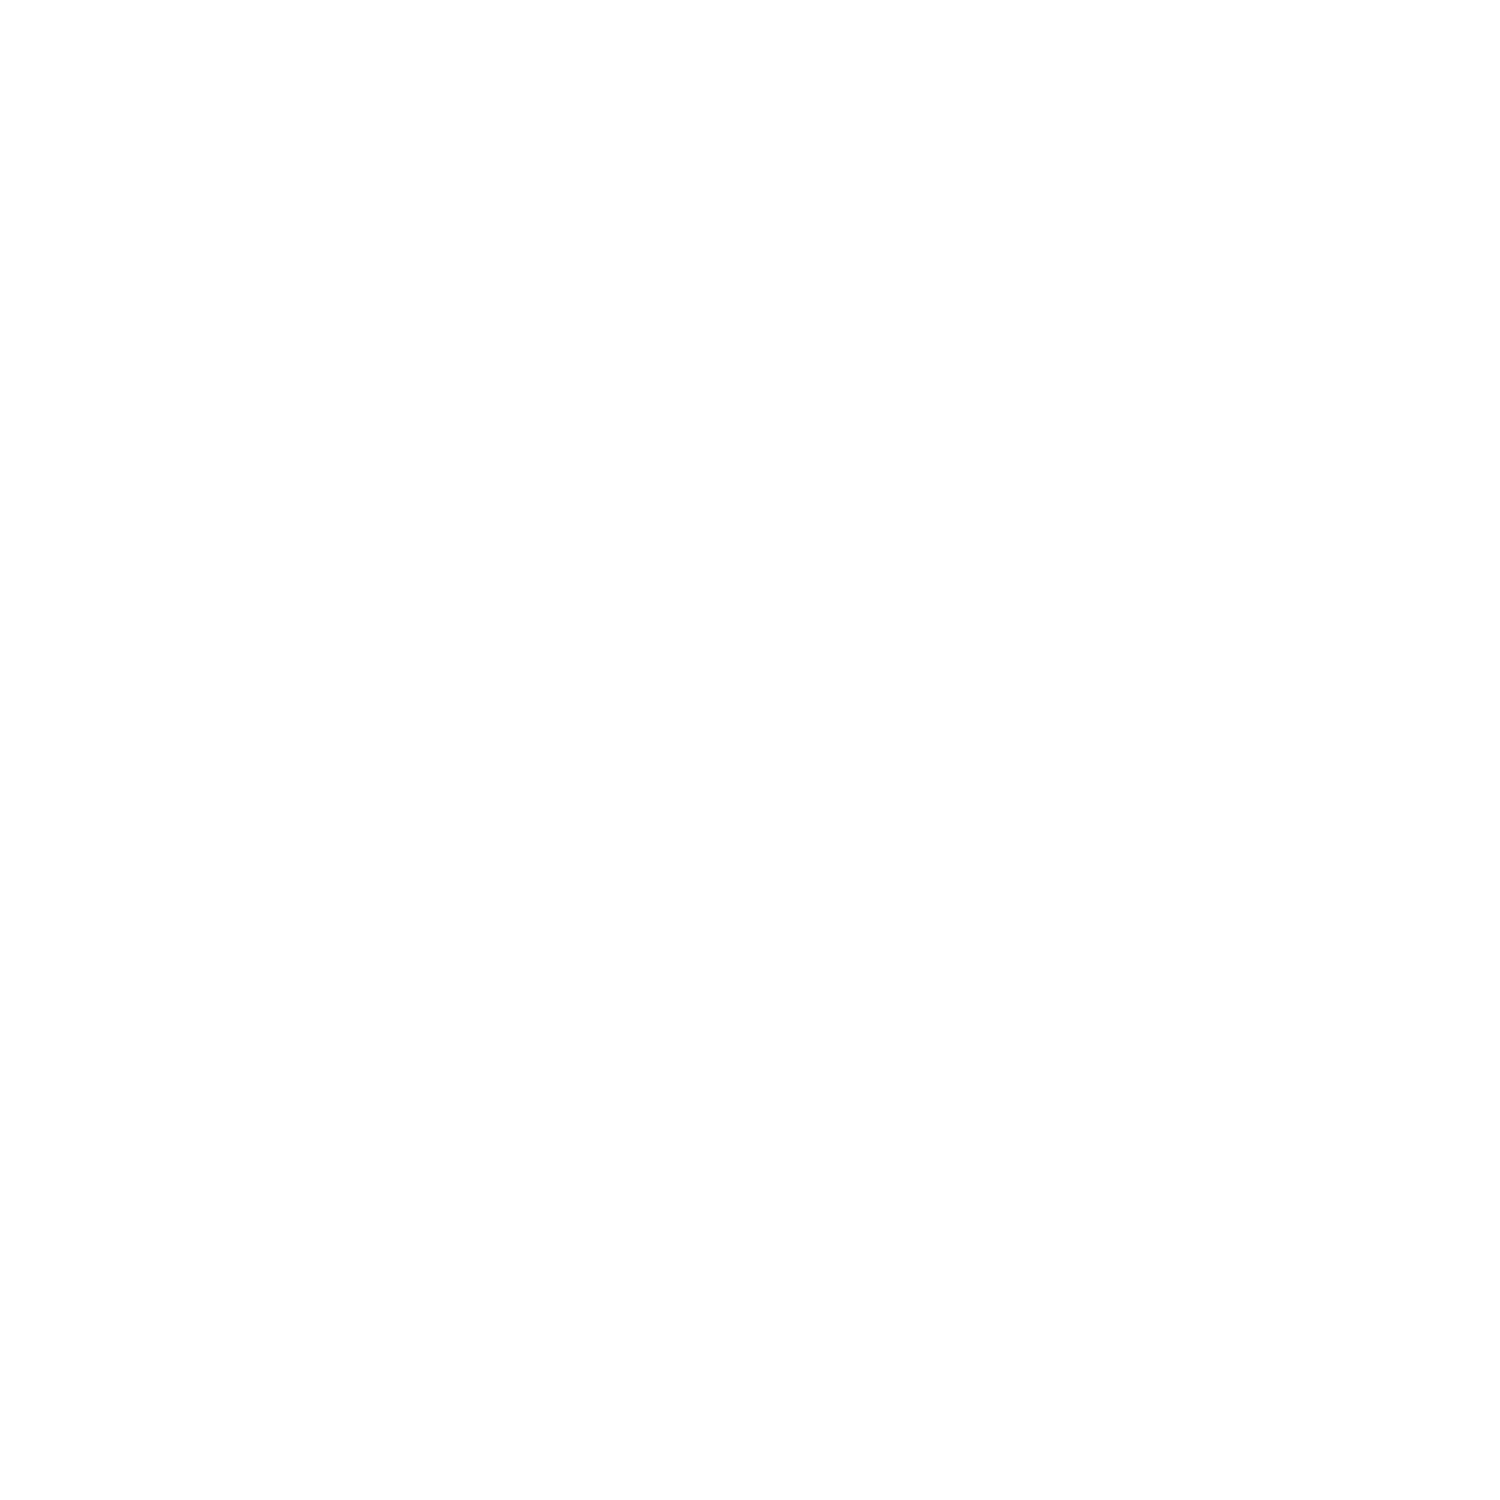 Huser Brother Band | Live Music | Texas Country | Waco Texas